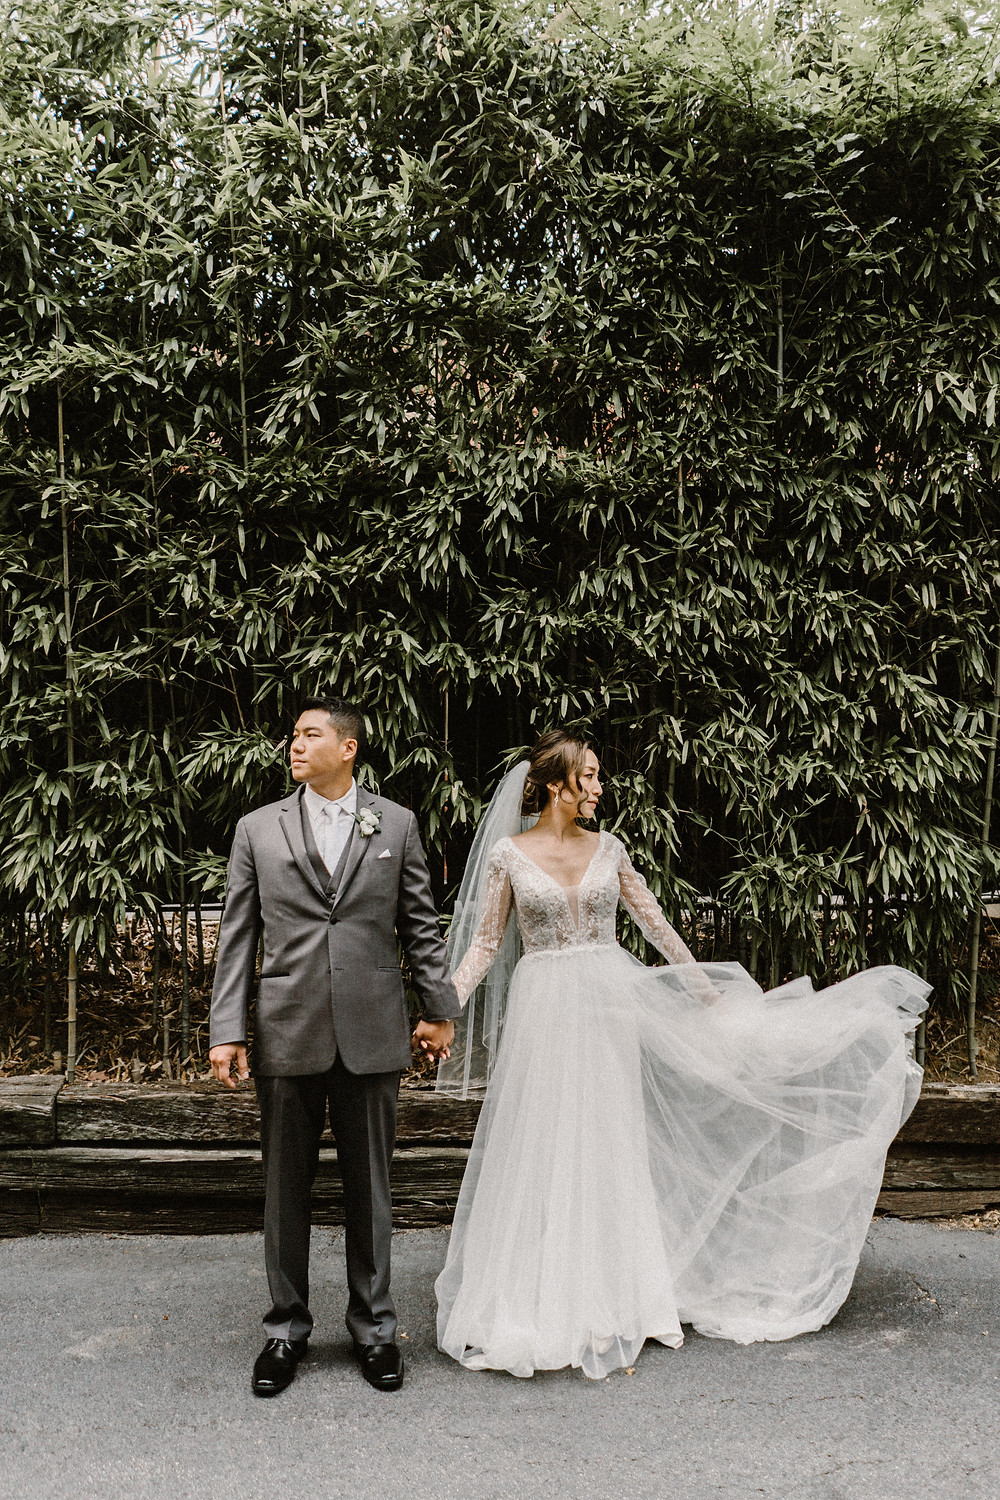 groom in a gray suit and bride in a tulle dress